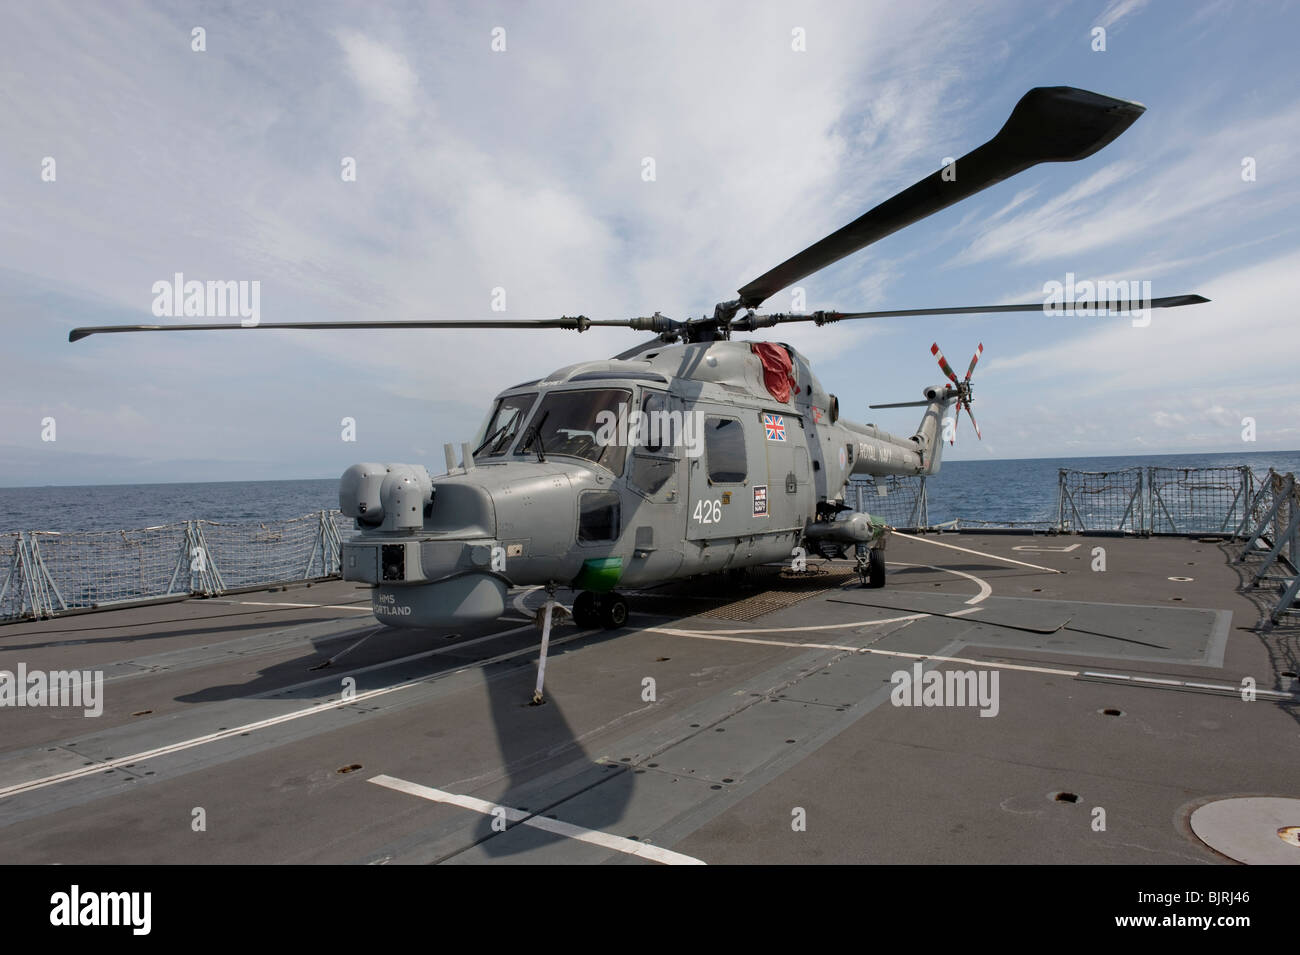 Royal Navy Mk 8 Lynx helicopter on flight deck of Type 23 frigate - Stock Image